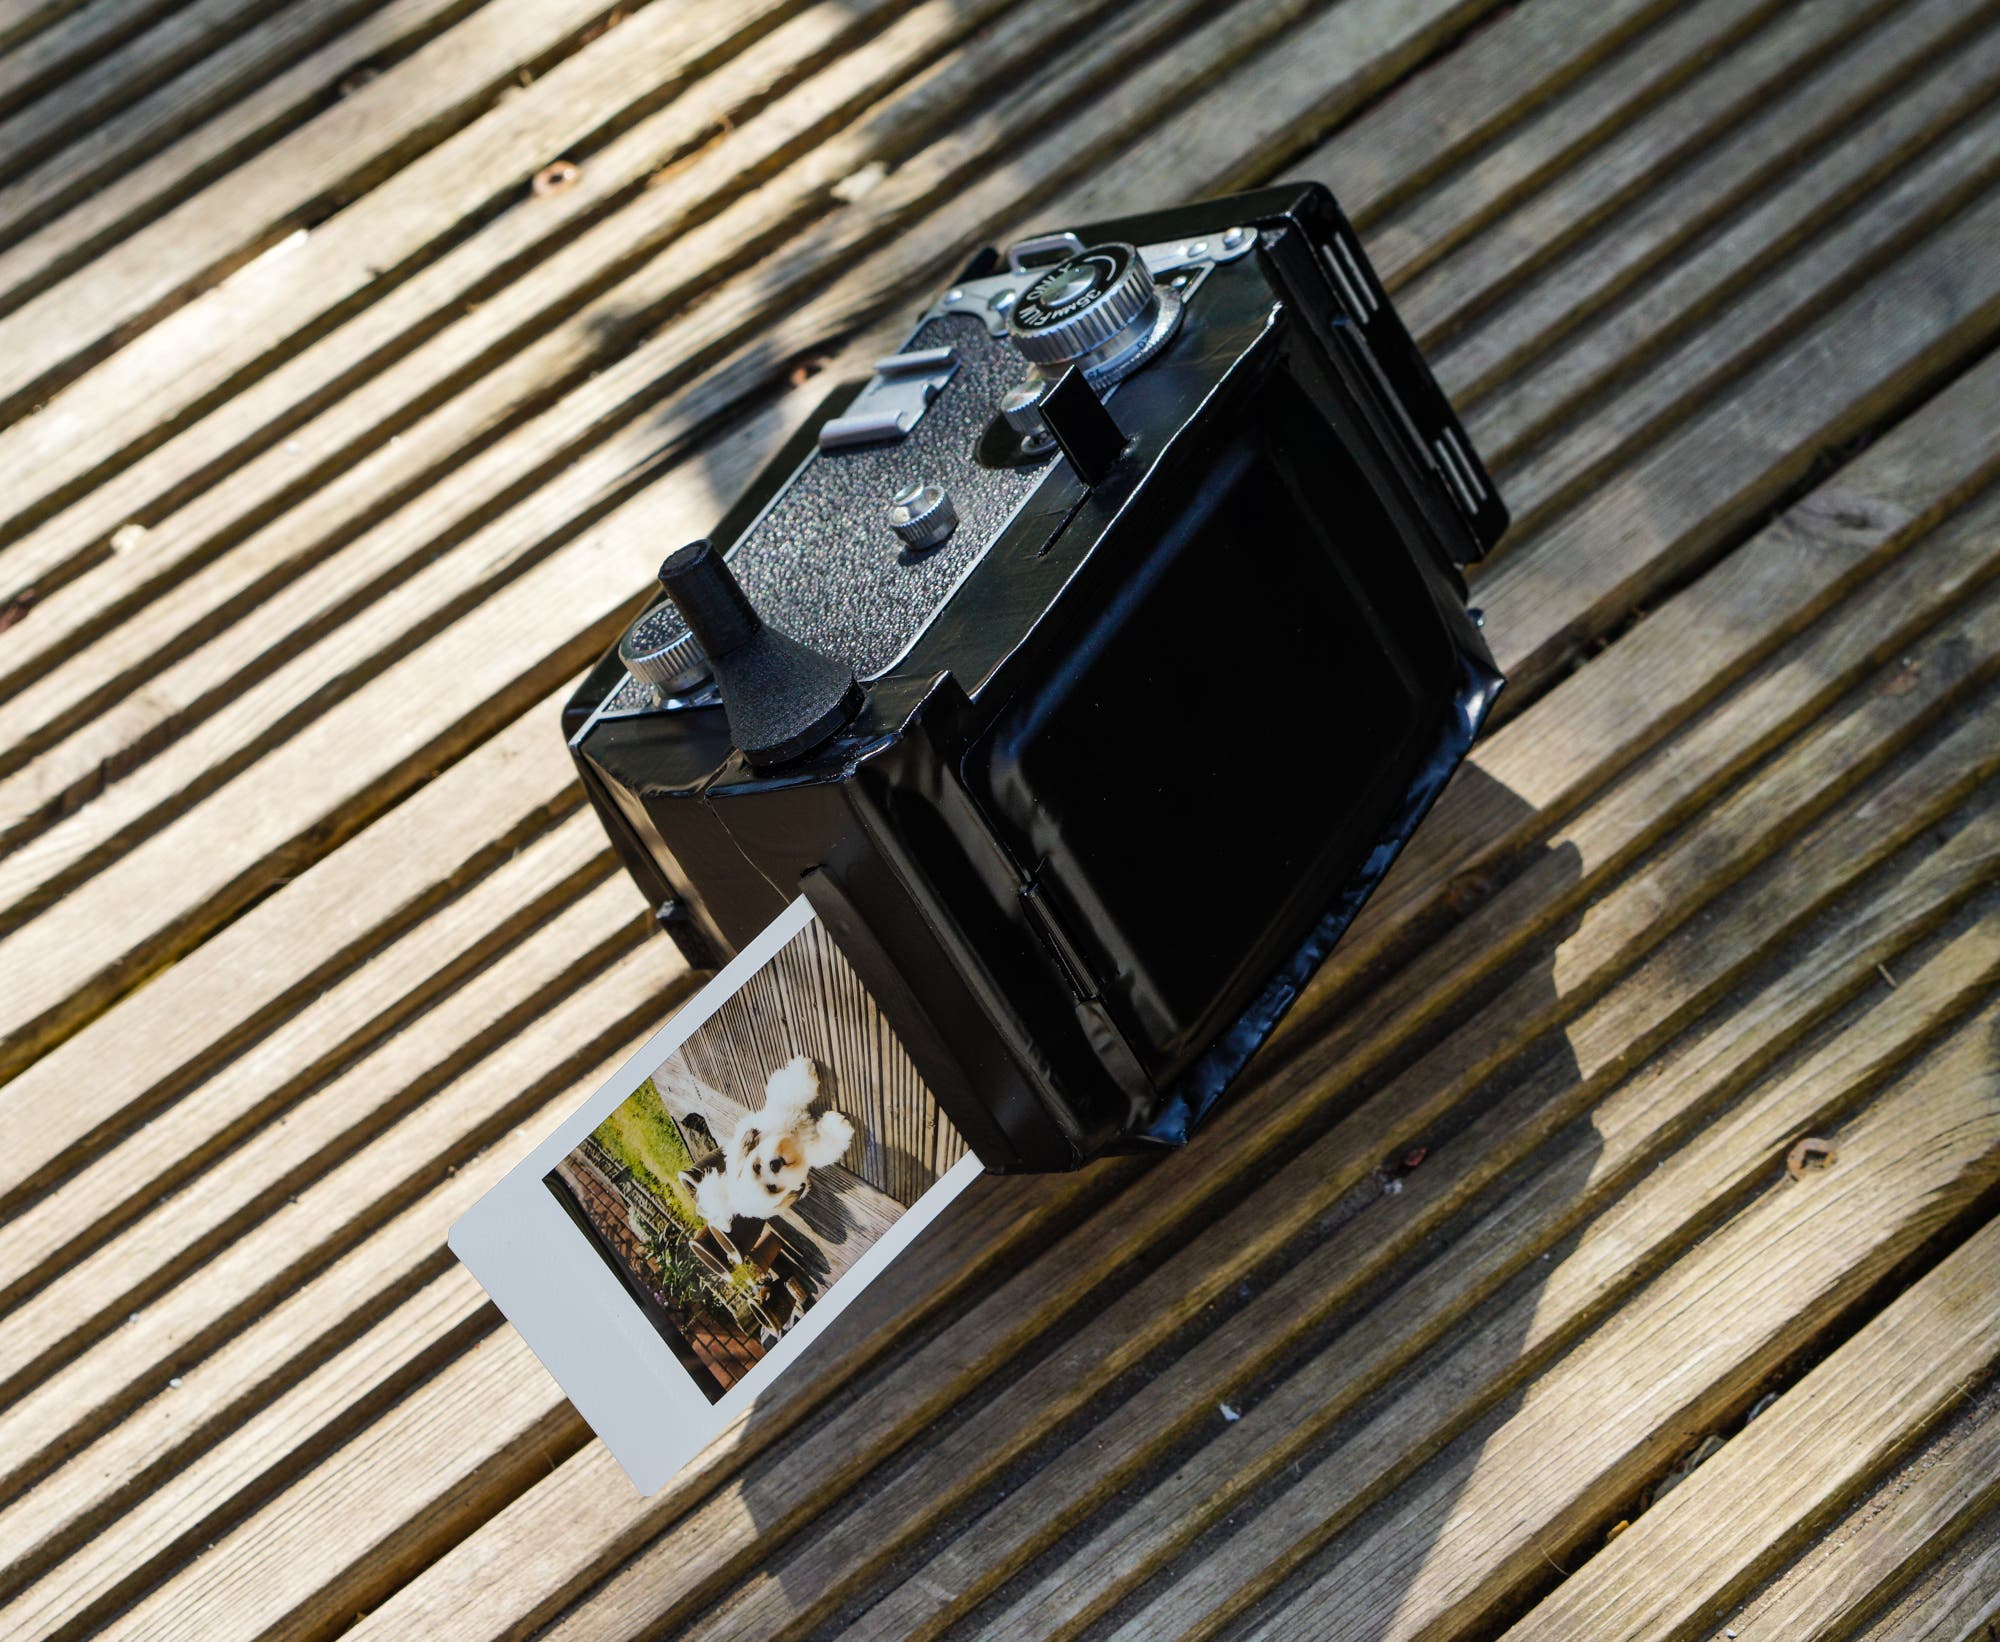 Steve Lloyd: Making a TLR Shoot Fujifilm Instax Film